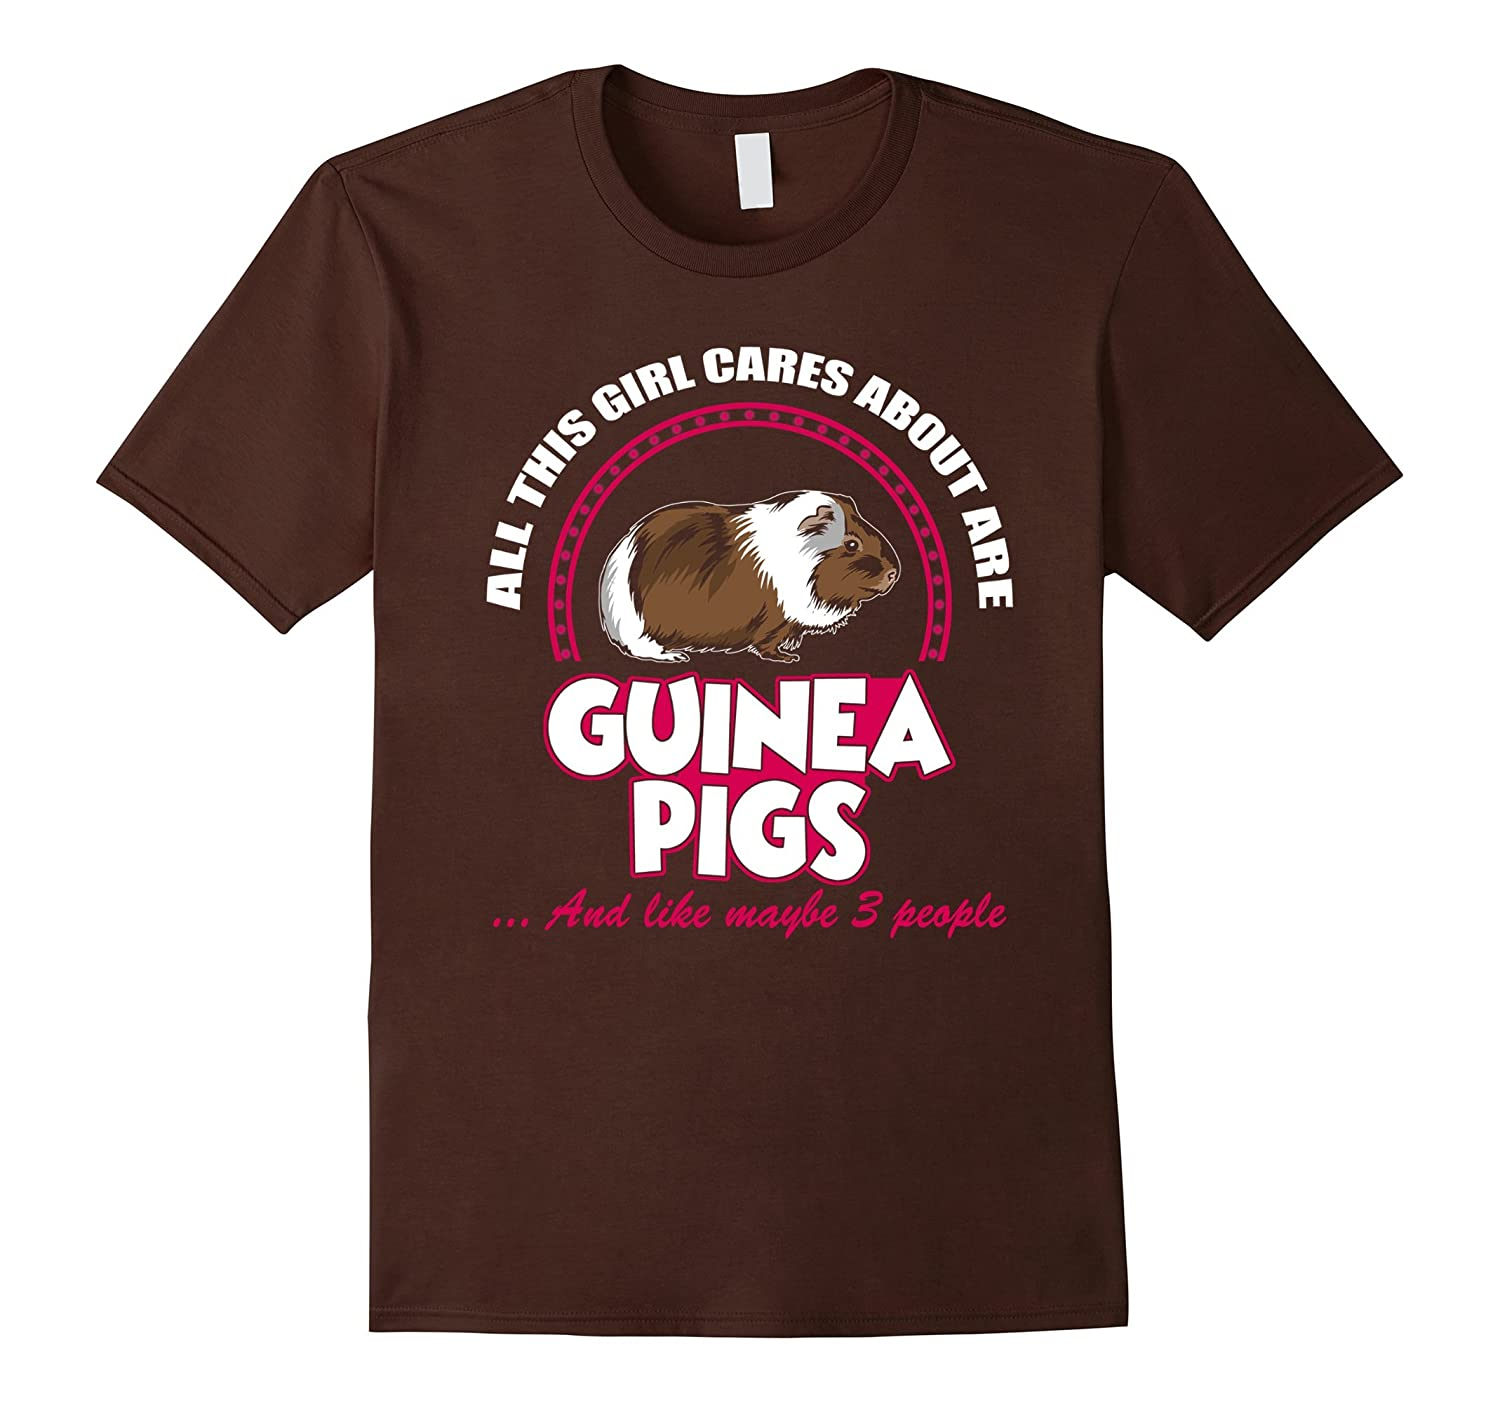 All This Girl Cares About Are Guinea Pigs T-Shirt-TD